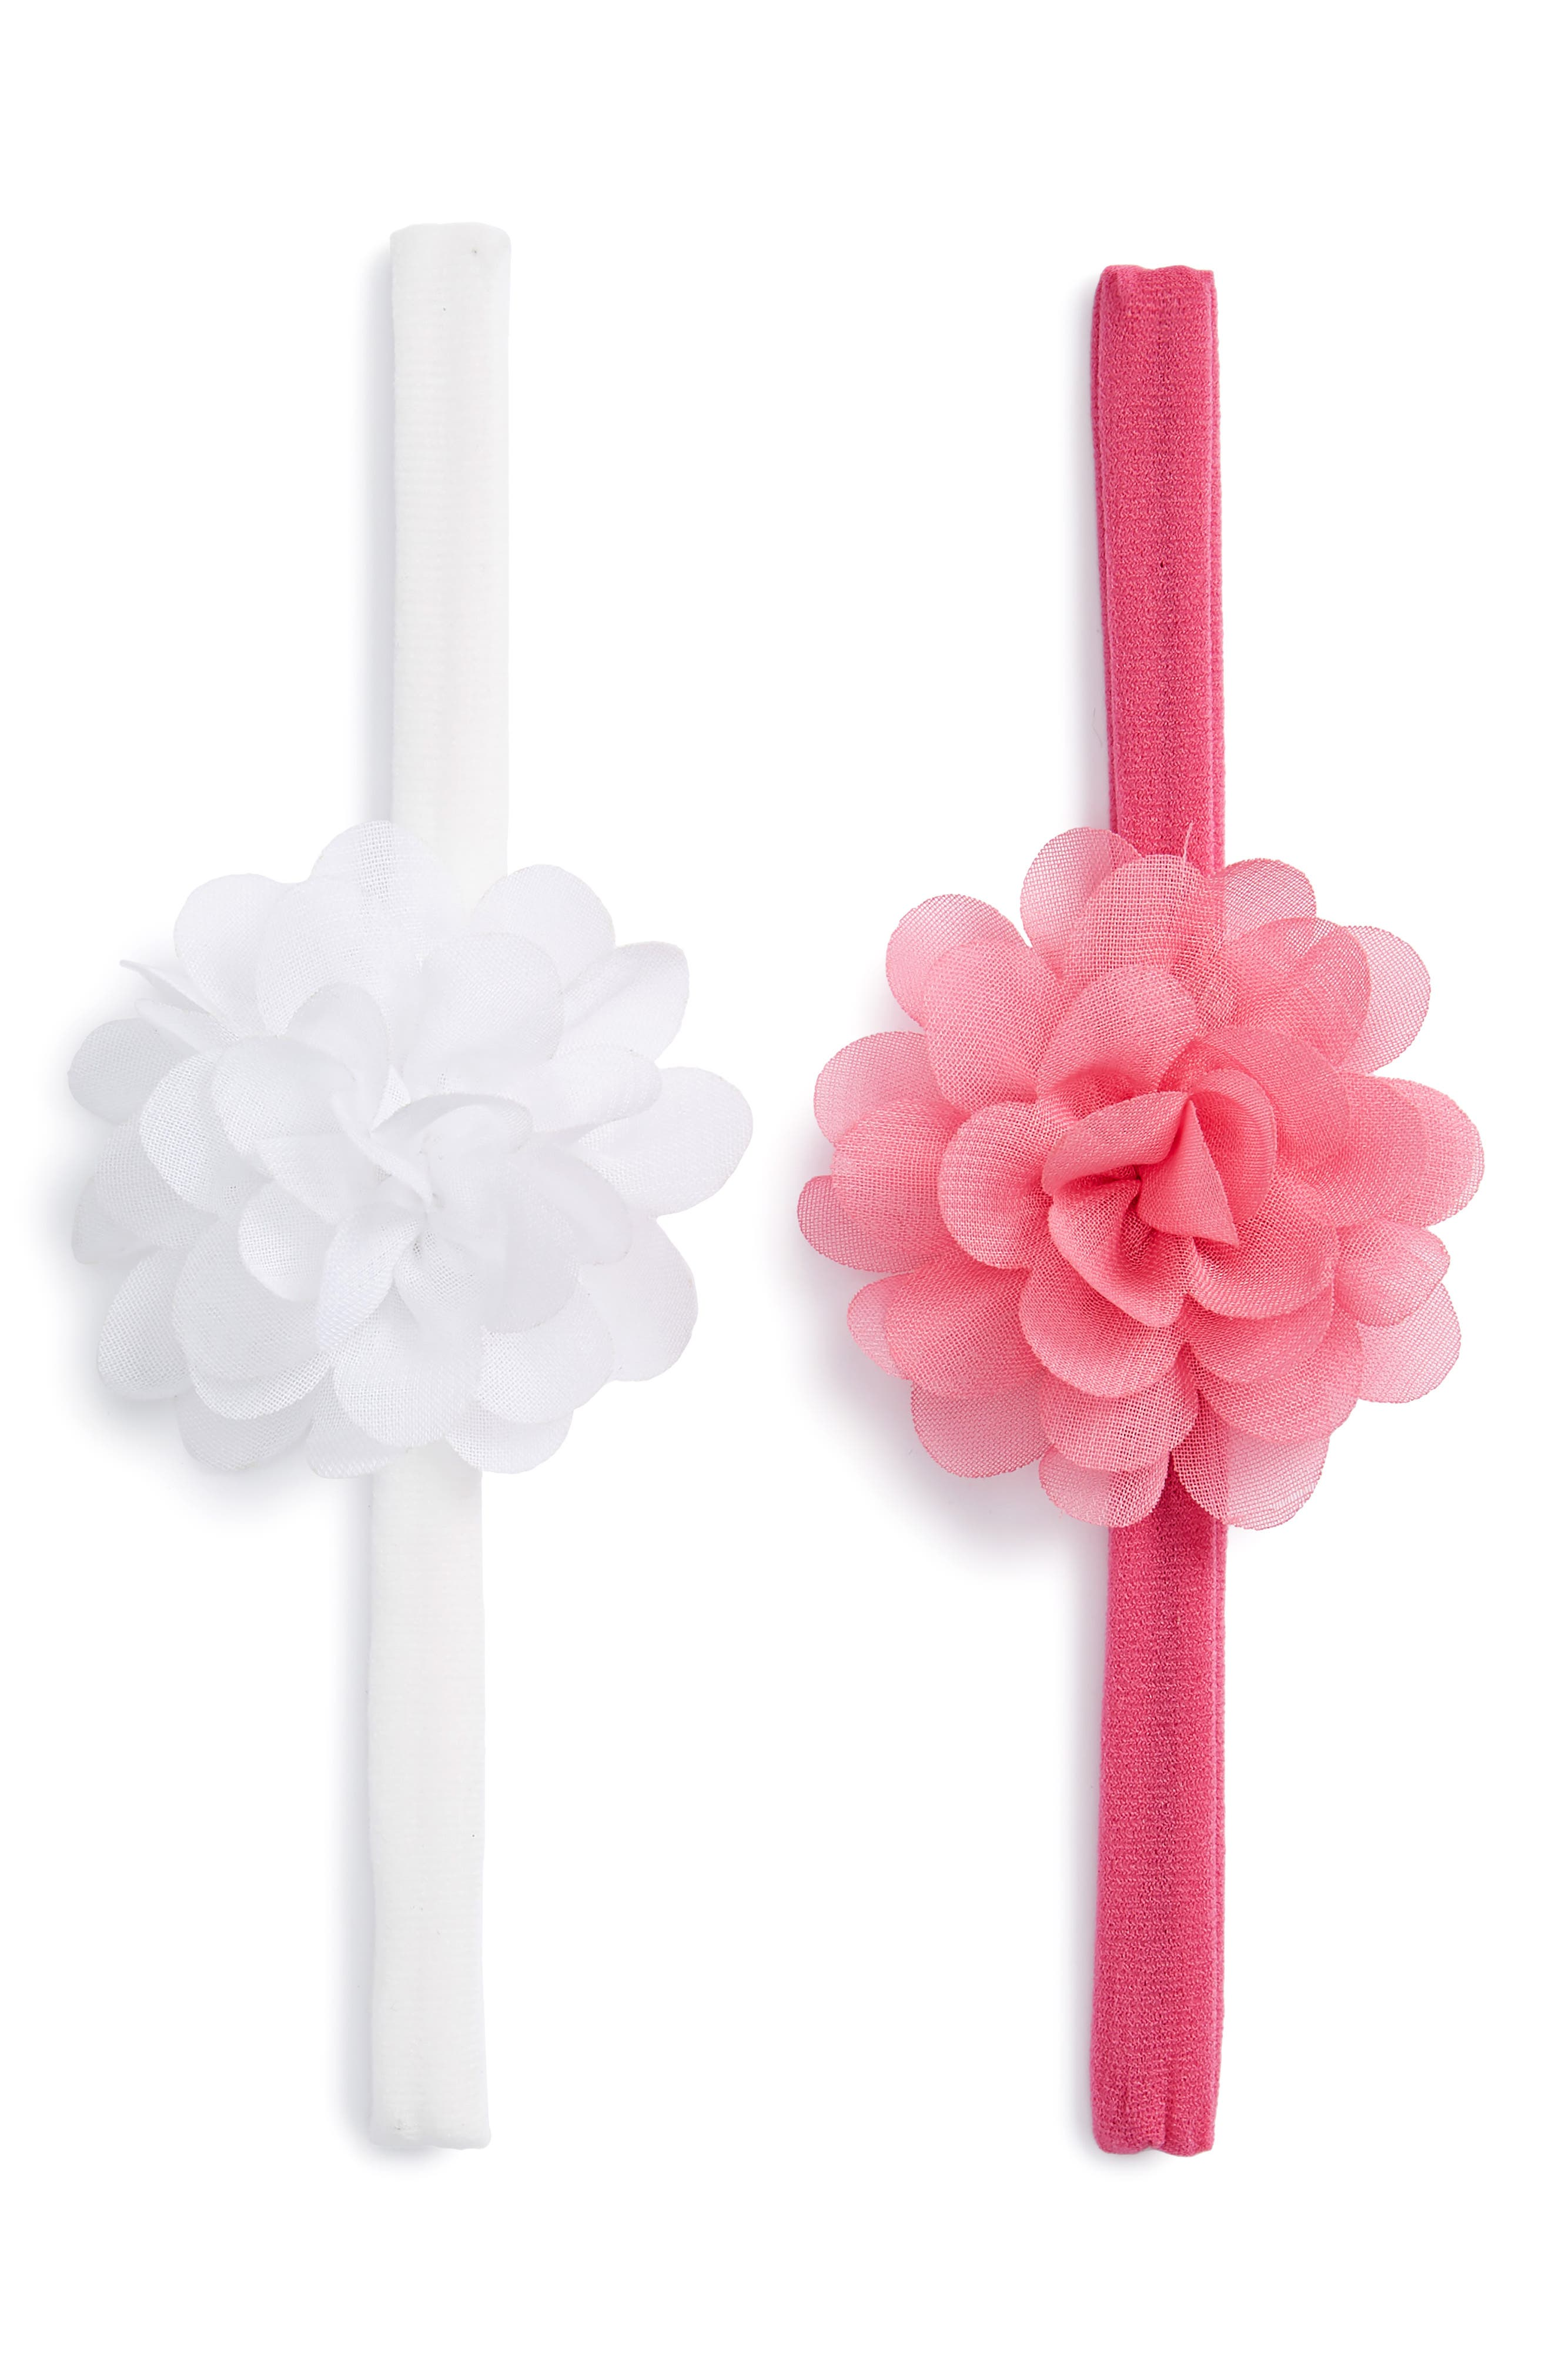 BABY BLING Set of 2 Mini Flower Headbands, Main, color, WHITE/ HOT PINK